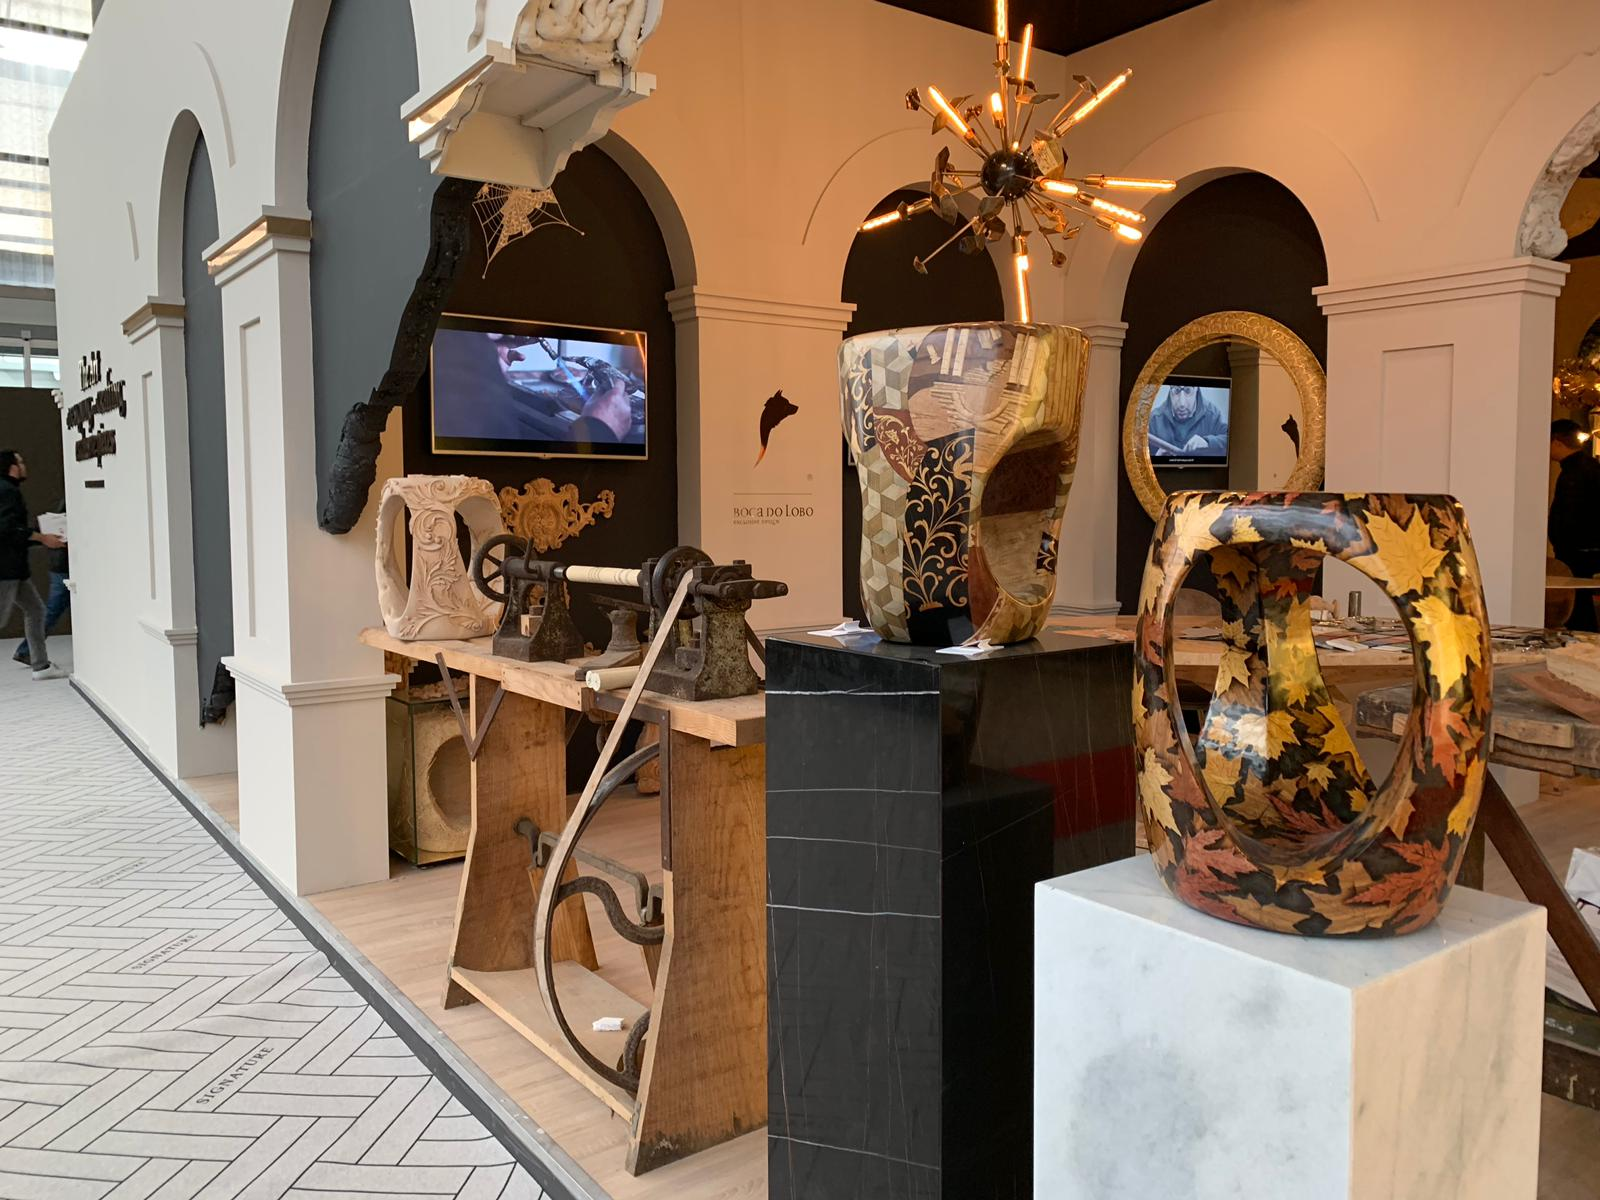 Maison et Objet 2019 – First Highlights from the First Day maison et objet 2019 Maison et Objet 2019 – First Highlights from the First Day Maison et Objet 2019     First Highlights from the First Day 8